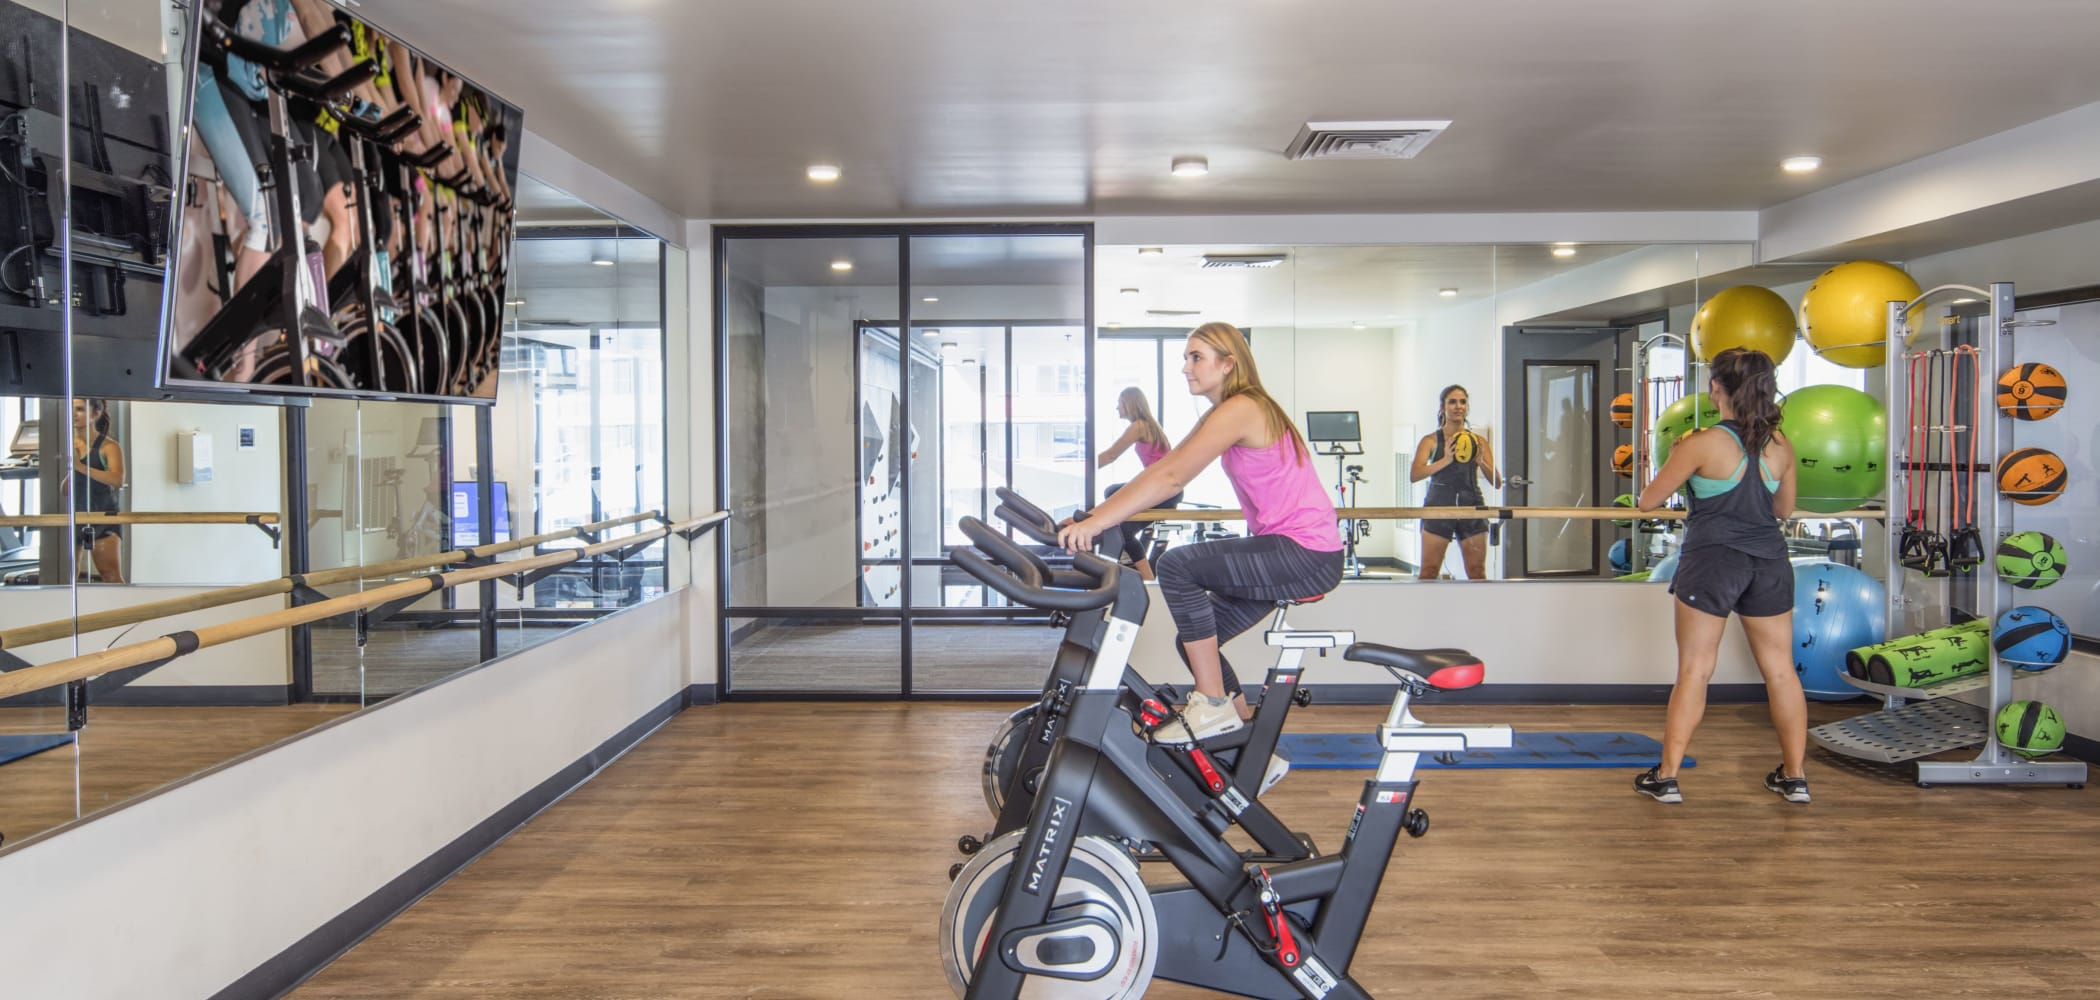 Yoga studio and spin room at RISE on Apache in Tempe, Arizona